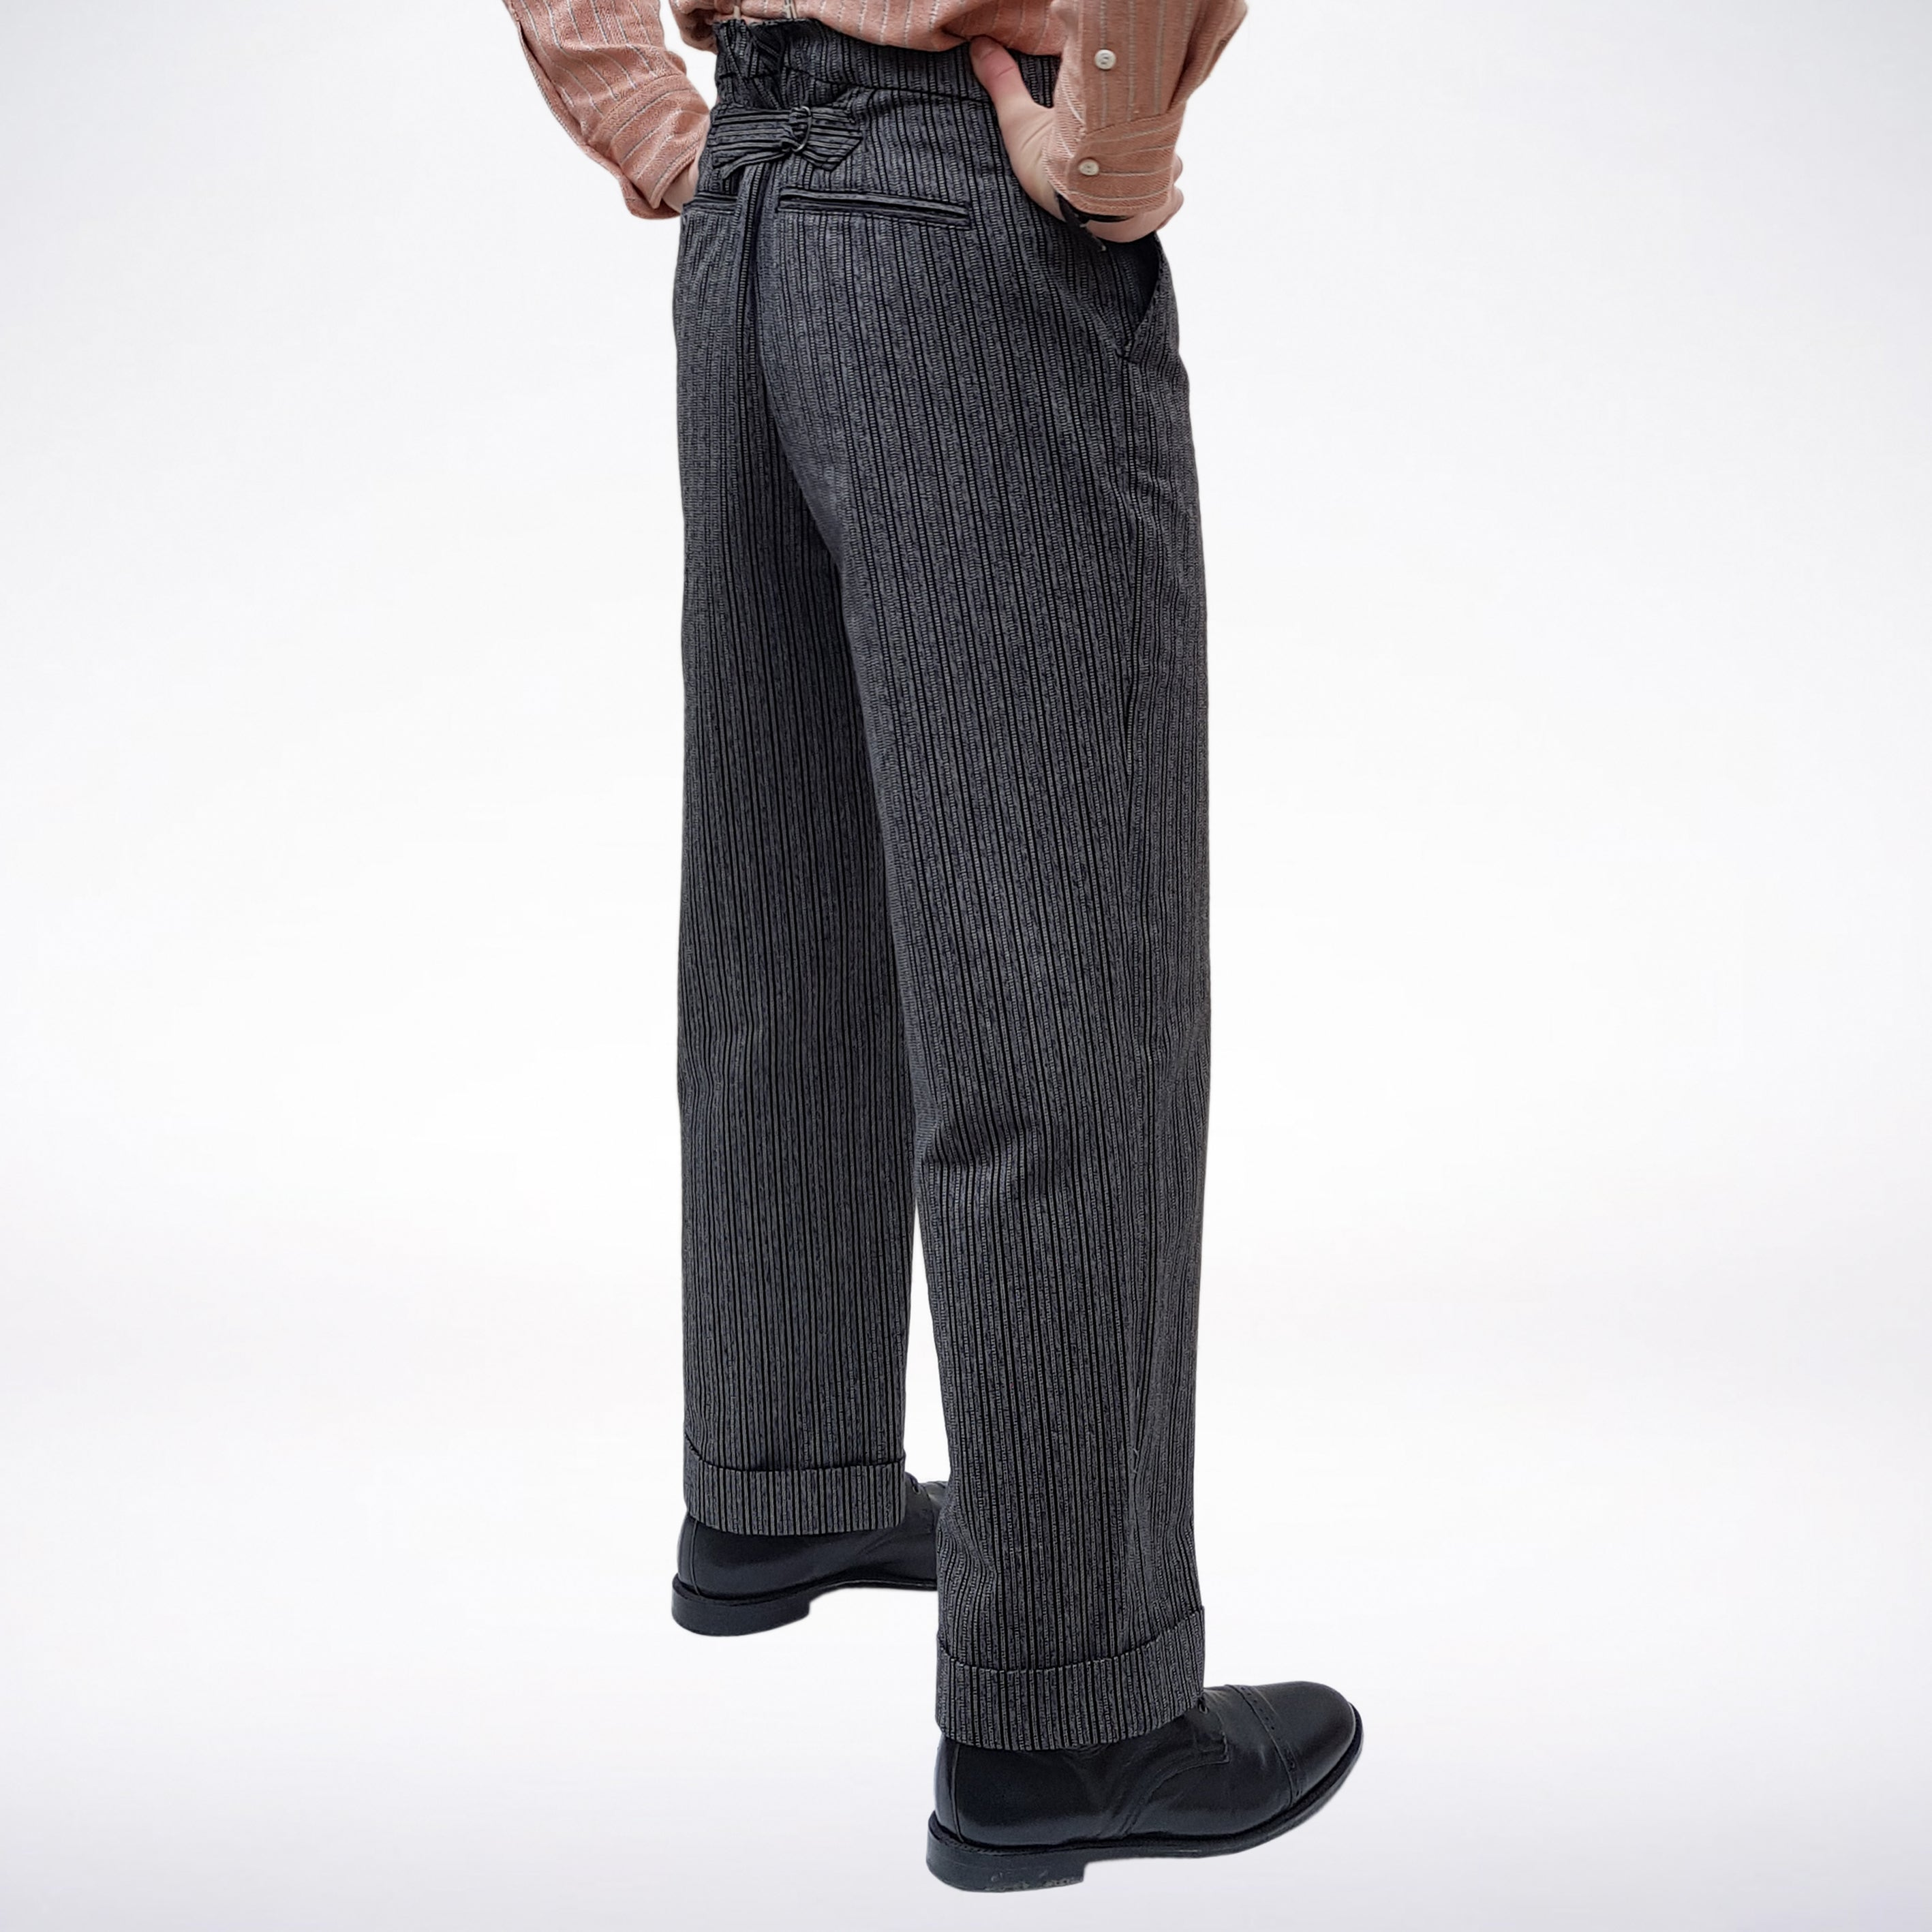 NEW! Workhouse Trouser